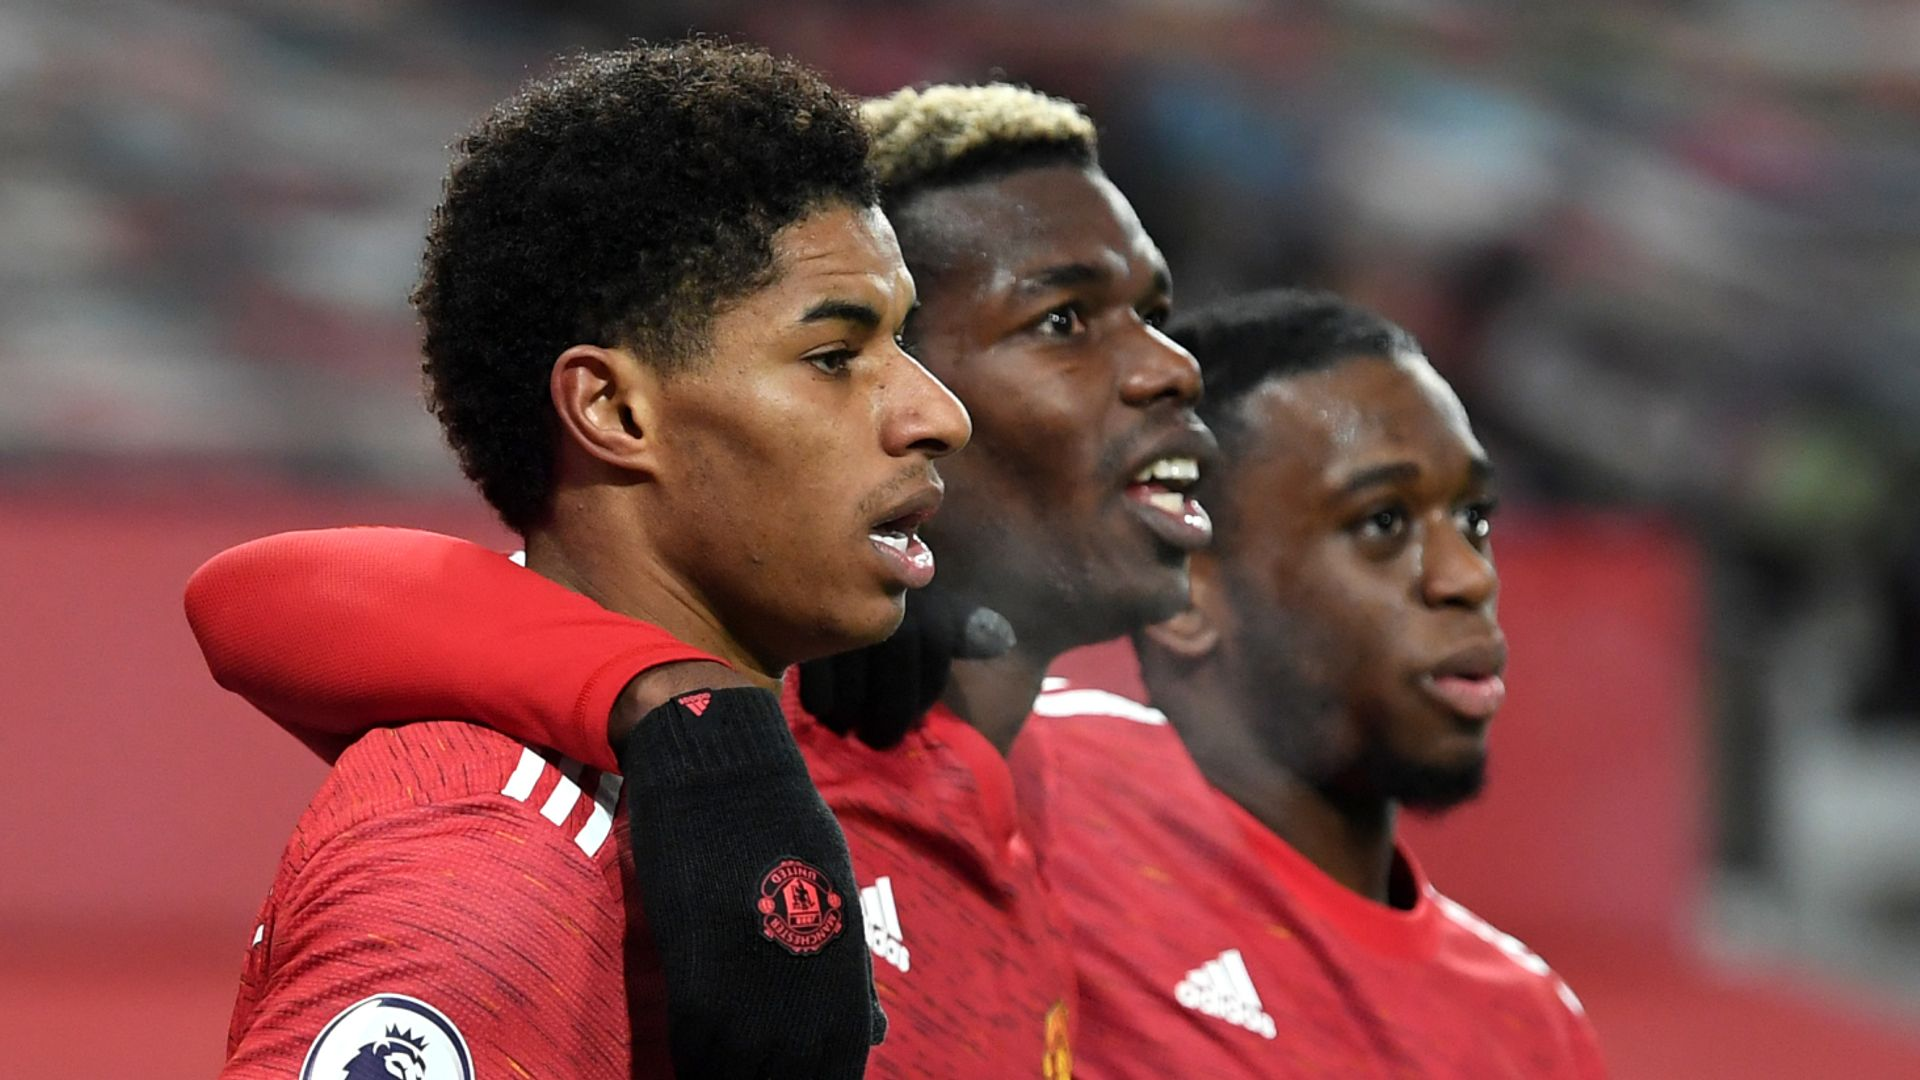 McAteer: Man Utd in a false position, they'll drop off